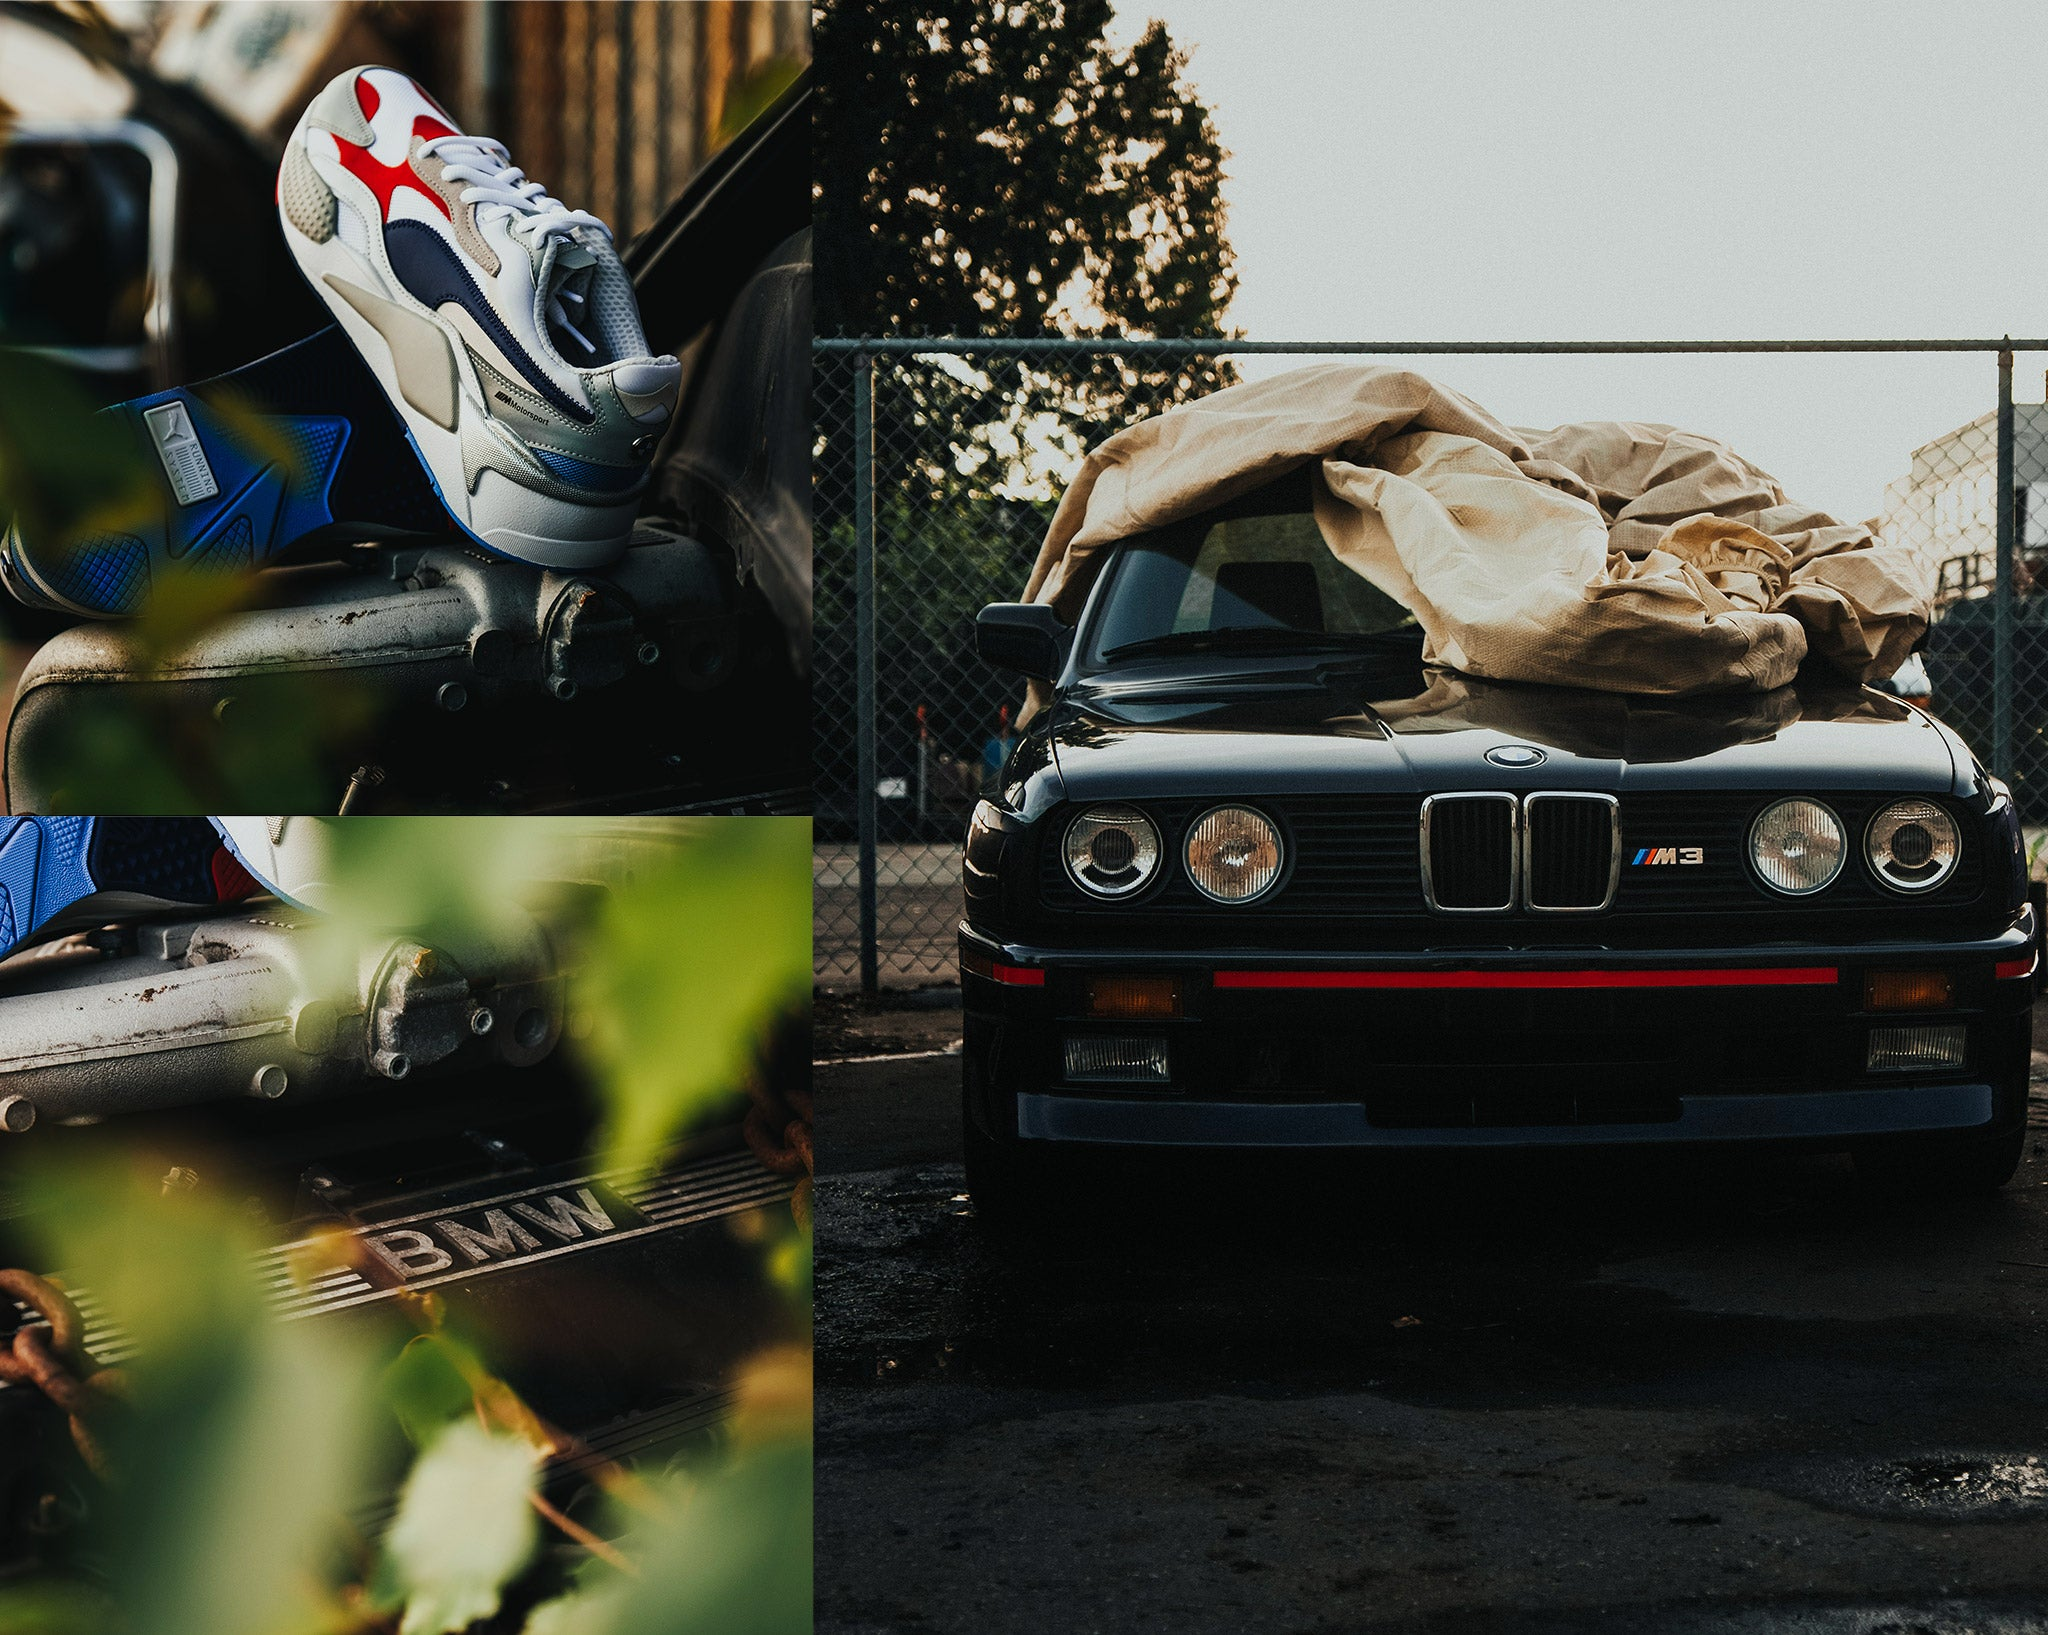 puma-bmw-collage